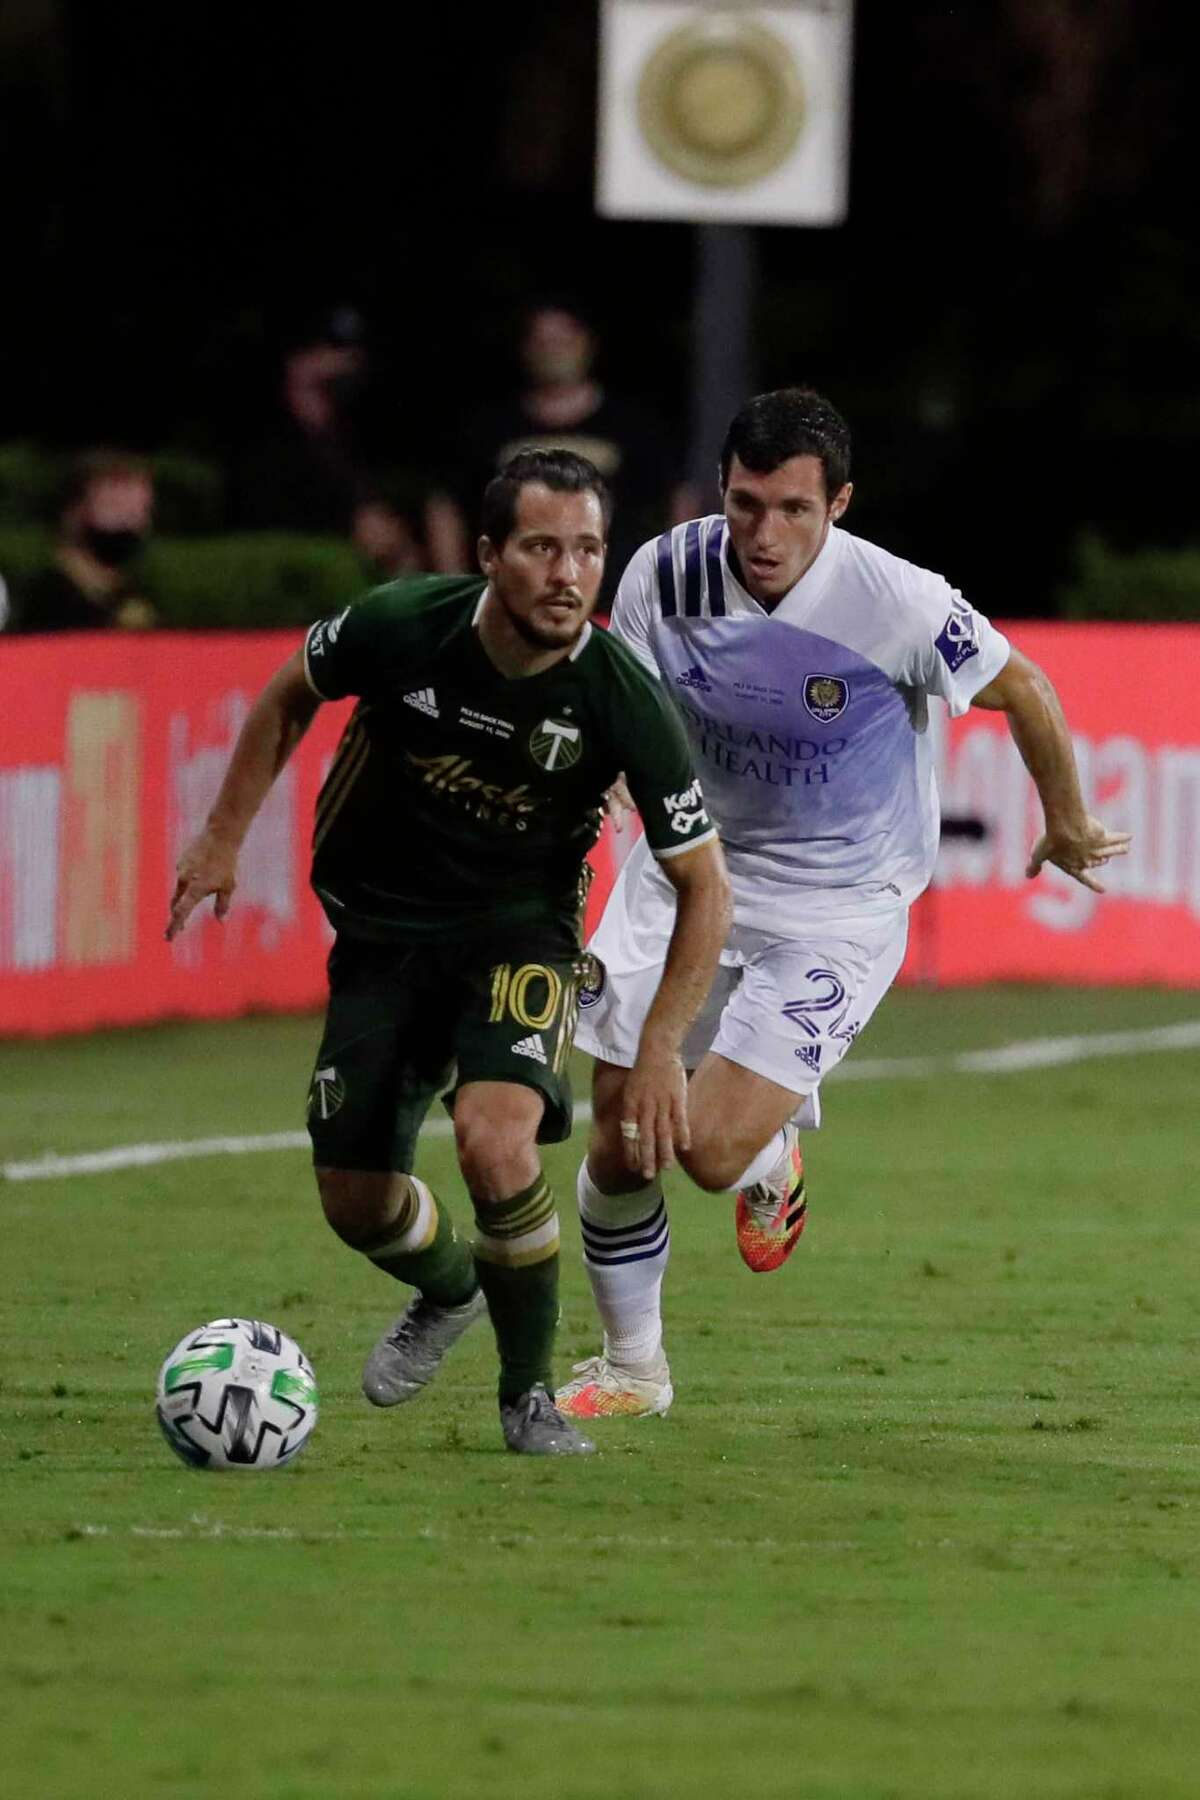 Portland Timbers midfielder Sebastian Blanco (10) outruns Orlando City defender Kyle Smith (24), during the second half of an MLS soccer match, Tuesday, Aug. 11, 2020, in Kissimmee, Fla. (AP Photo/John Raoux)